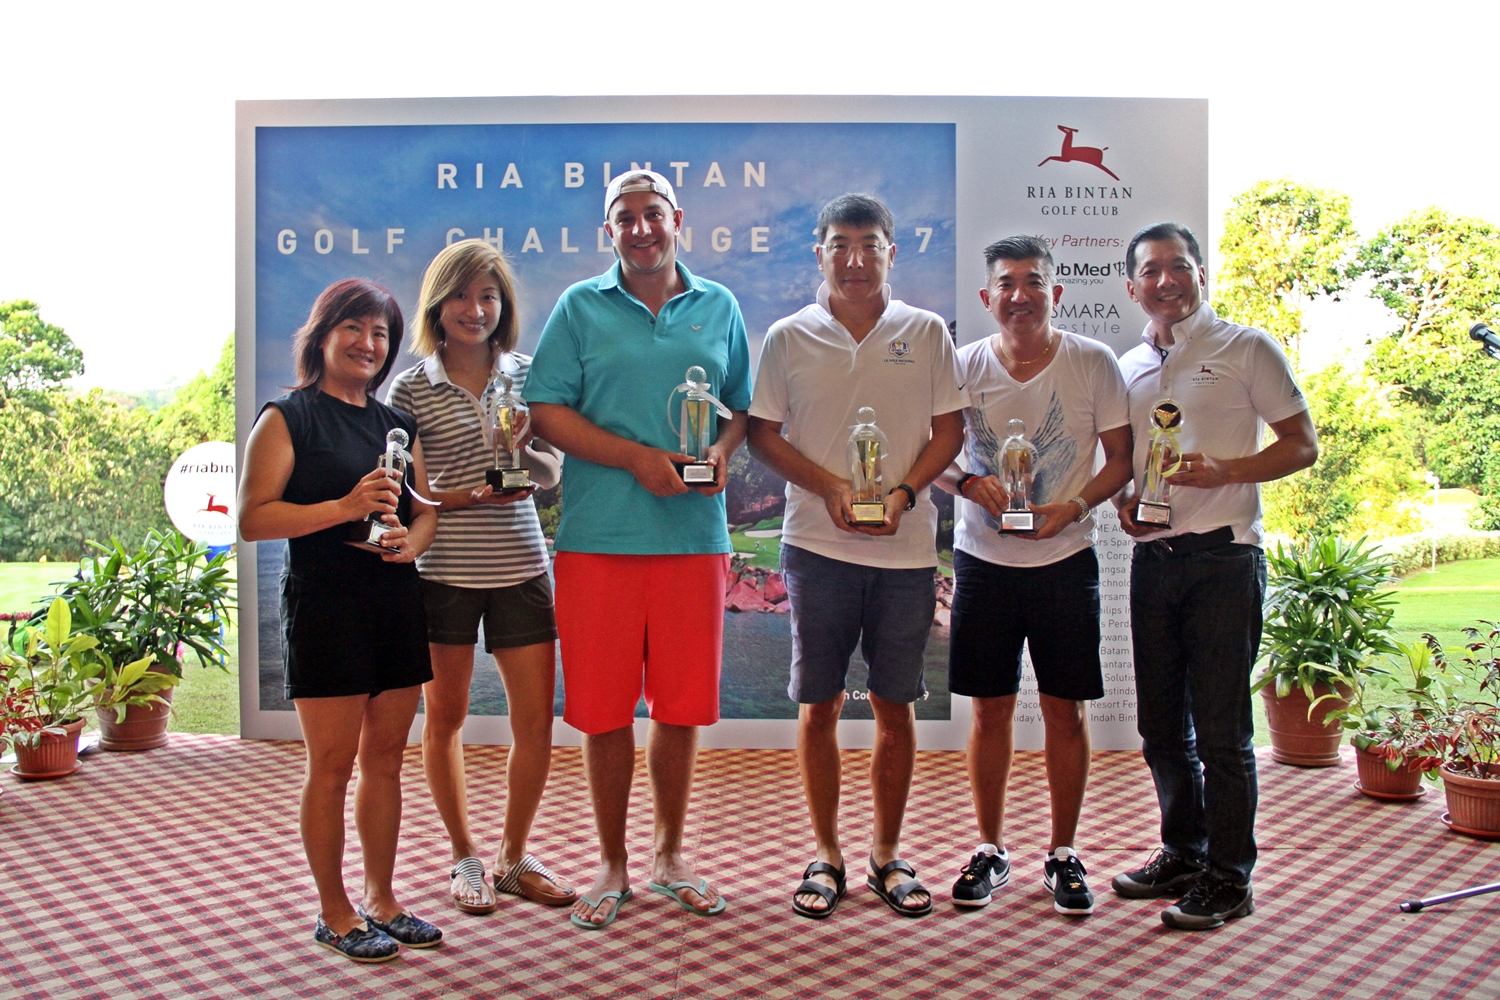 From left to right: Kwok Lilian (Ladies Best Nett Winner), Tan Yen Yen (Ladies Best Gross Winner), Gregory Edwards Hides (Member Division Best Gross Winner), Feng Li Jun (Division A Best Gross Winner), Vincent Tan Hai York (Division A Best Nett Winner), Gary Ng (Overall Gross Champion).